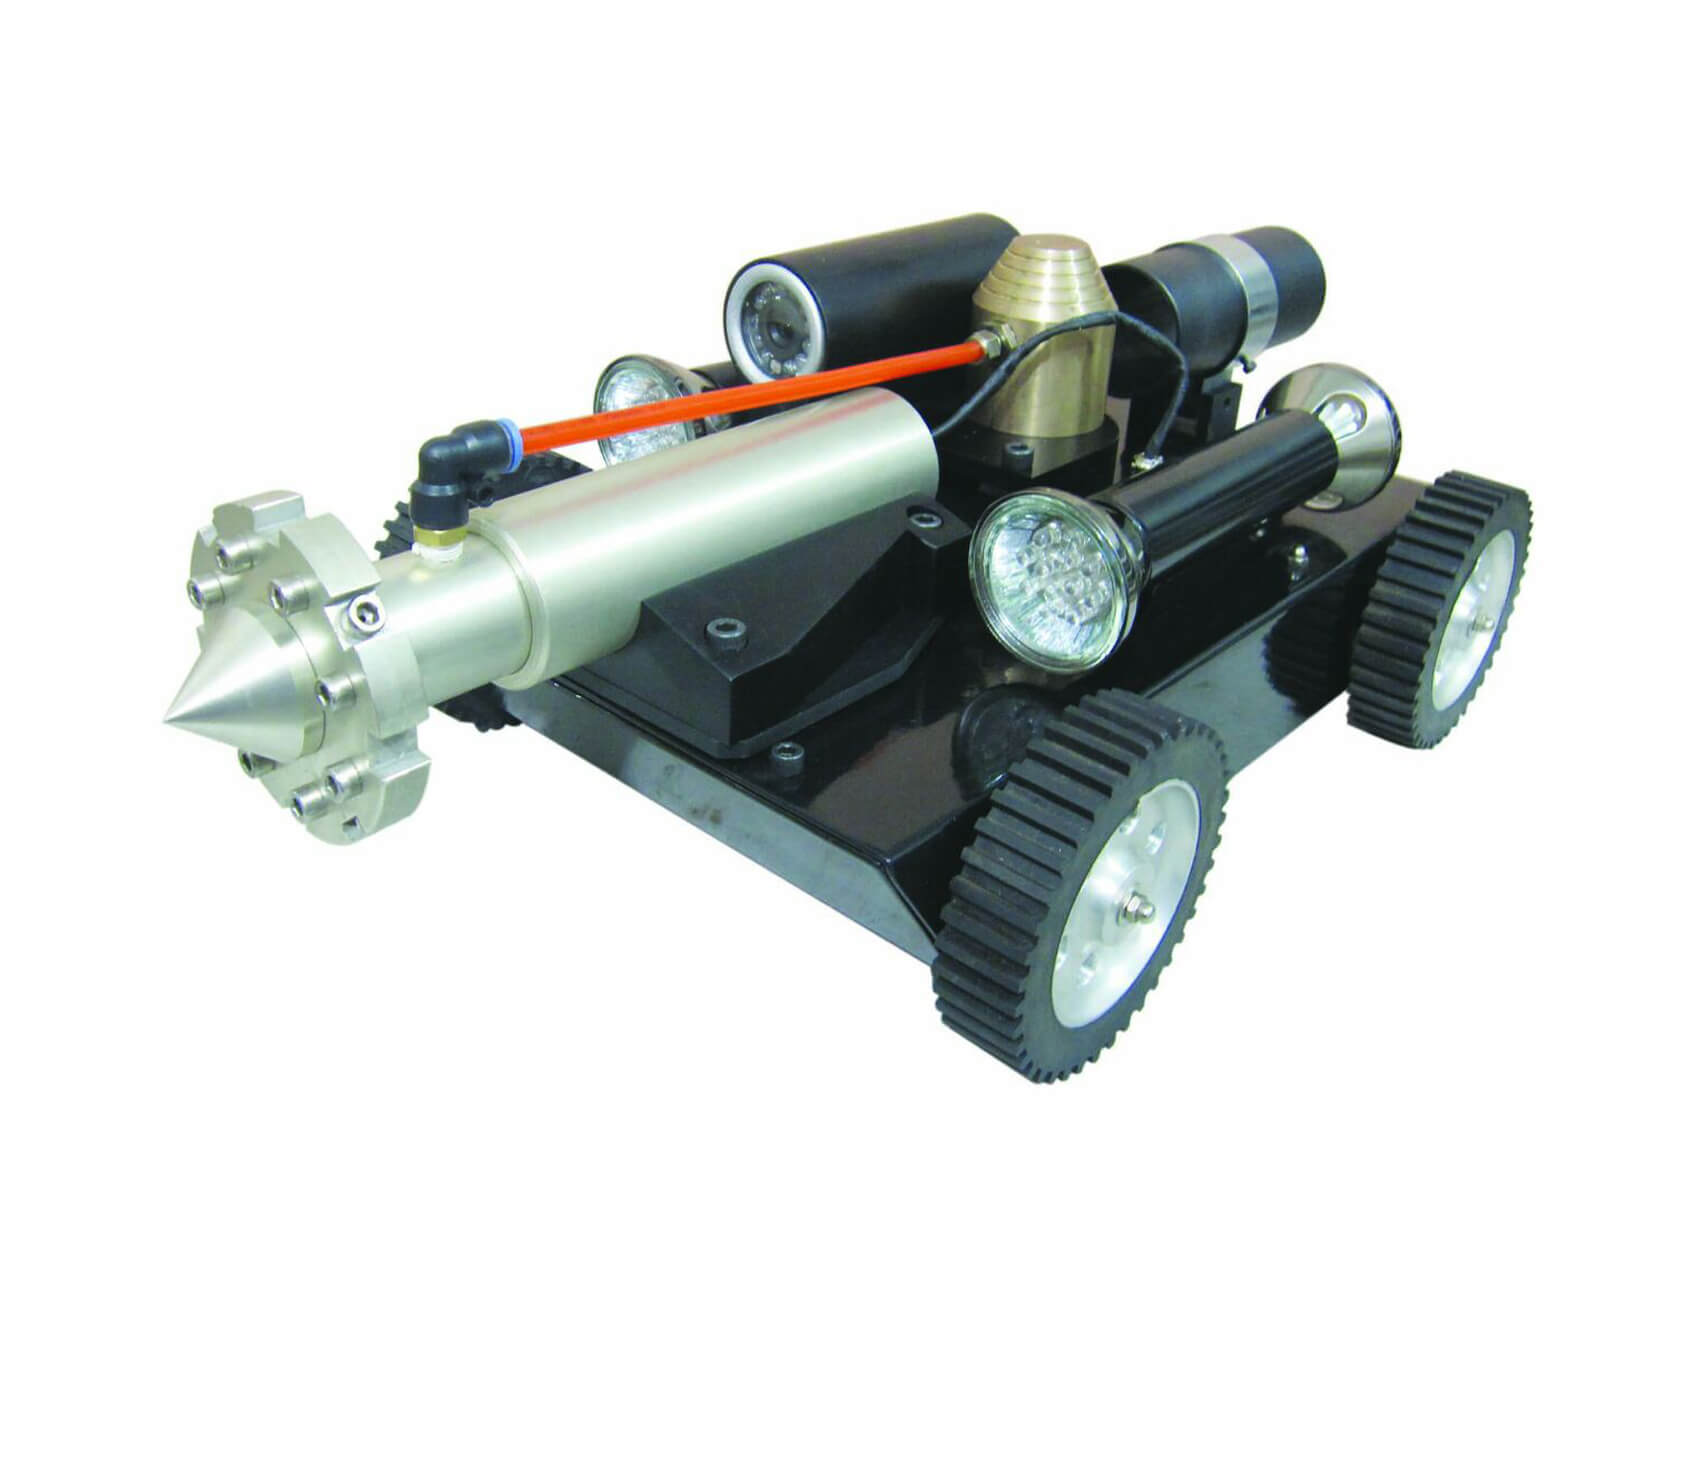 modular-type-pulse-air-hammer-and-air-whip-robot-image